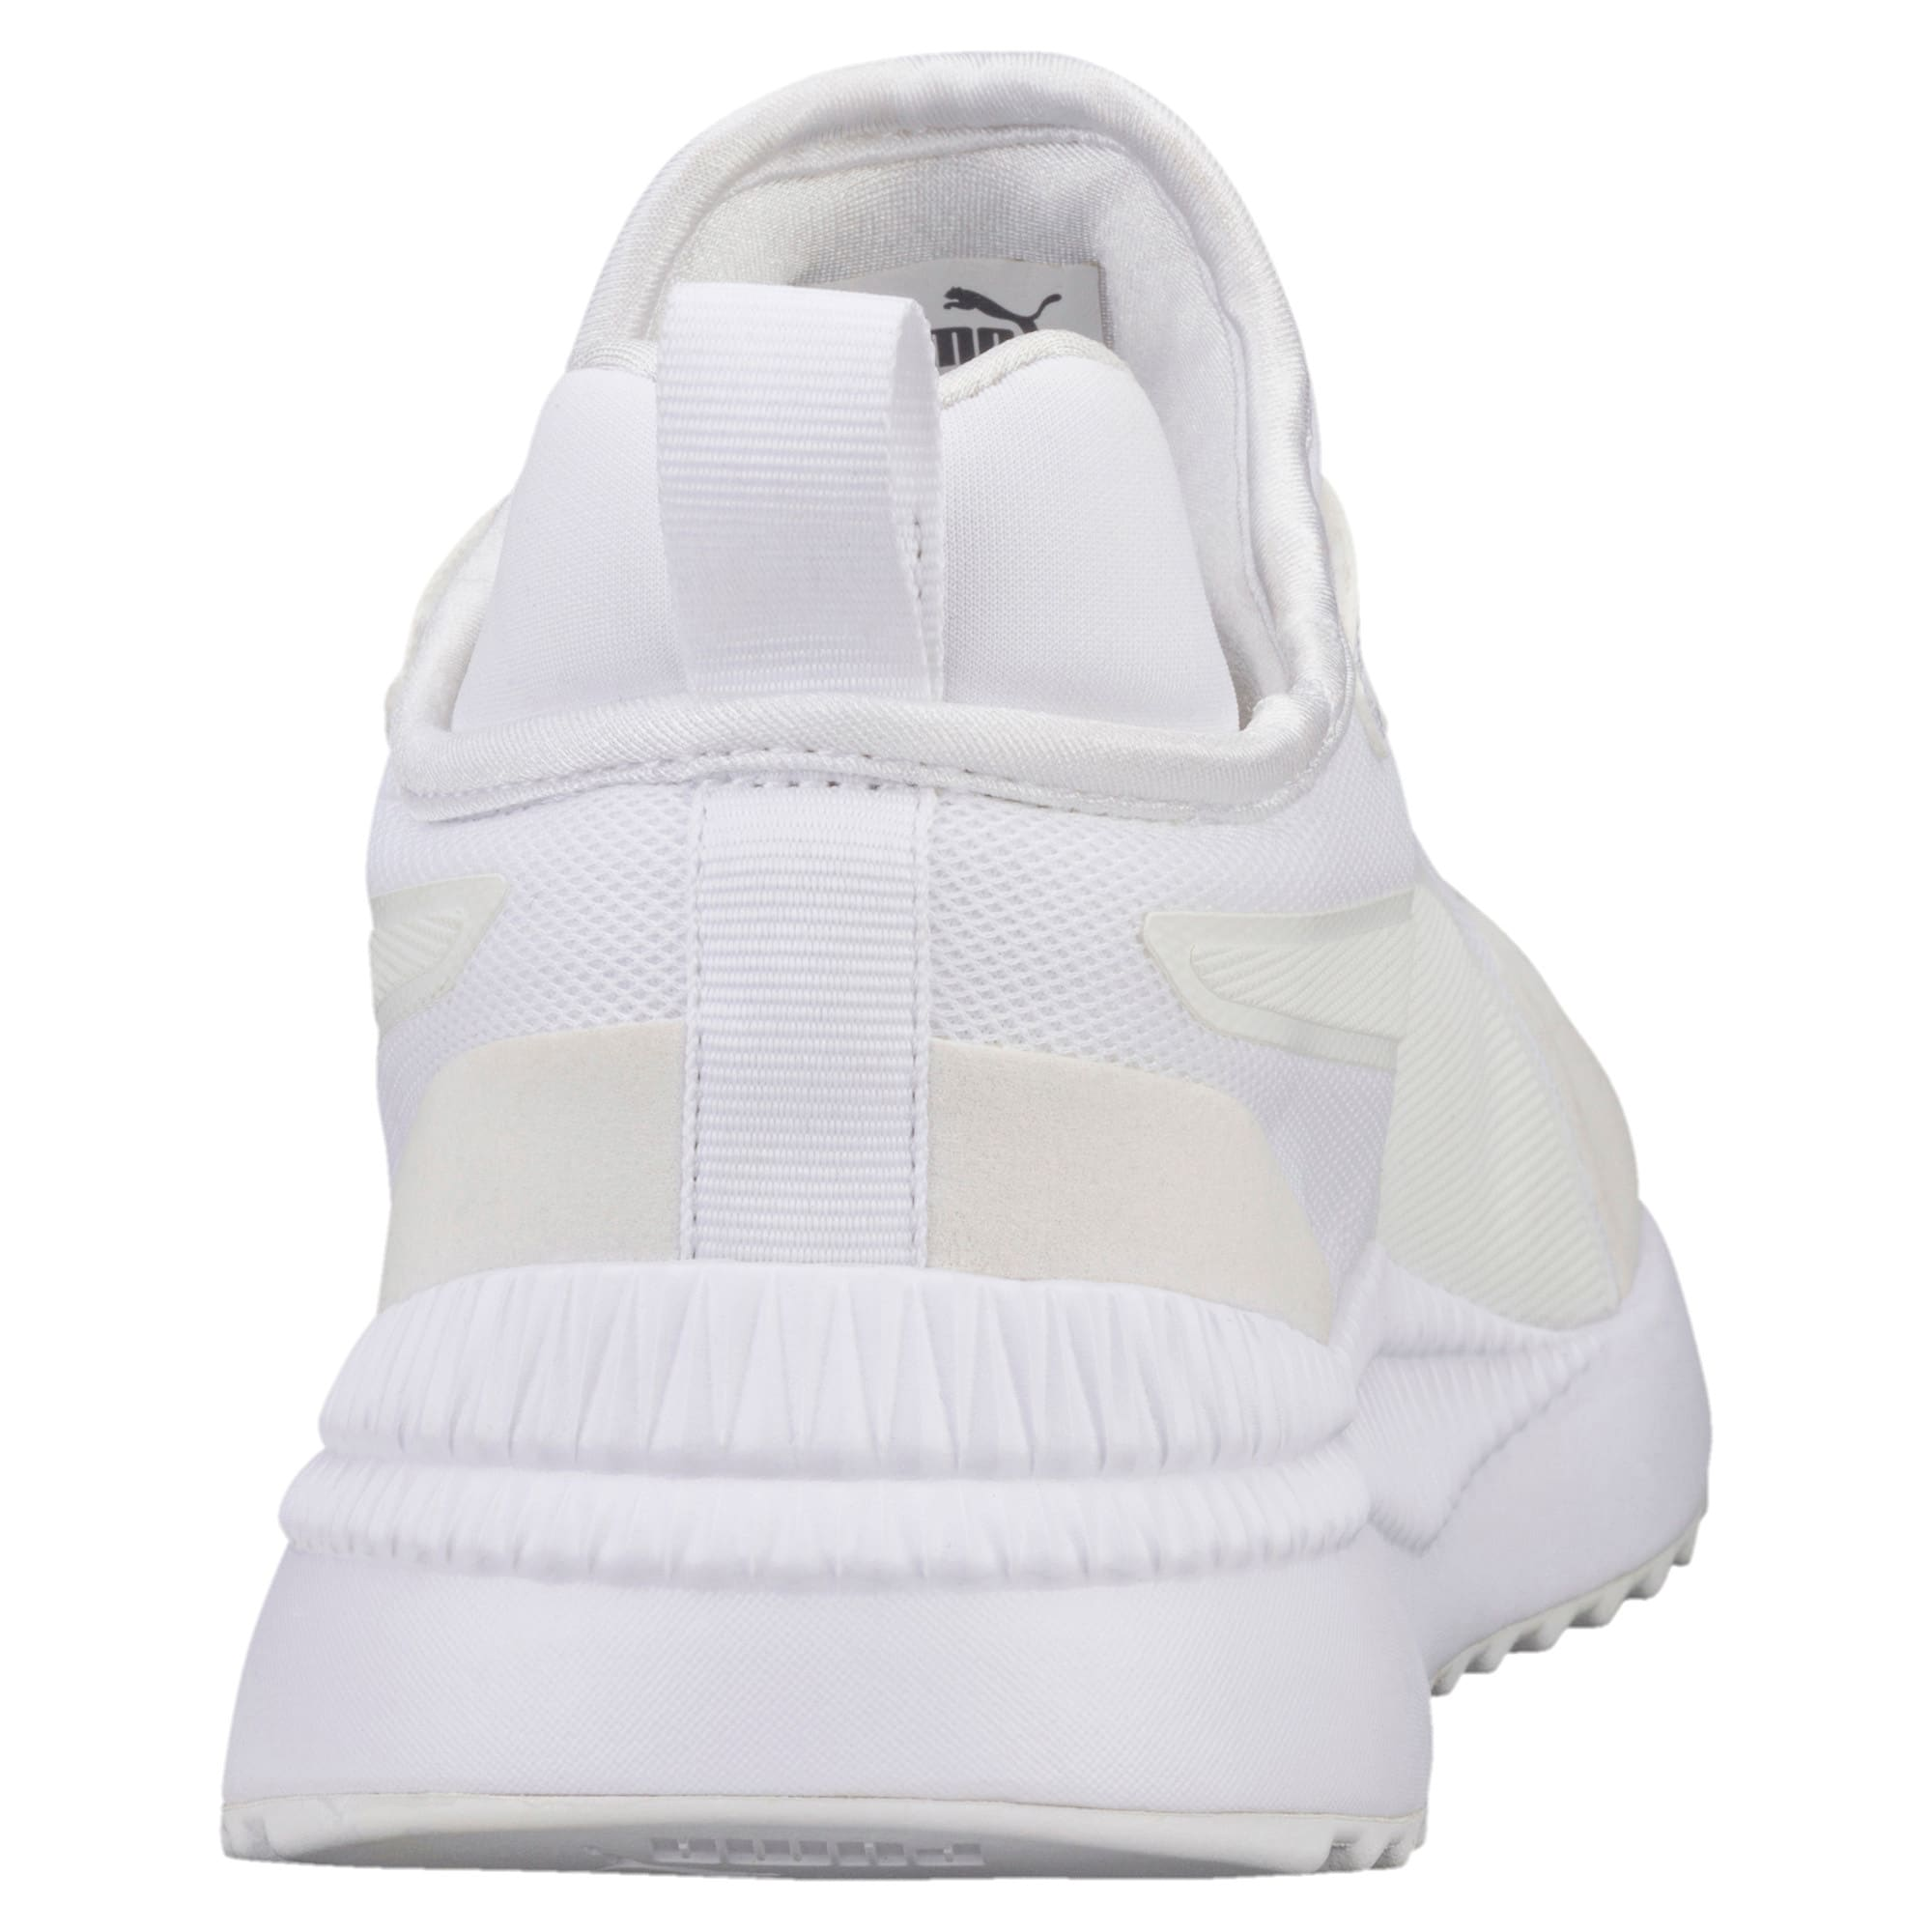 Thumbnail 2 of Pacer Next Trainers, Puma White-Puma White, medium-IND